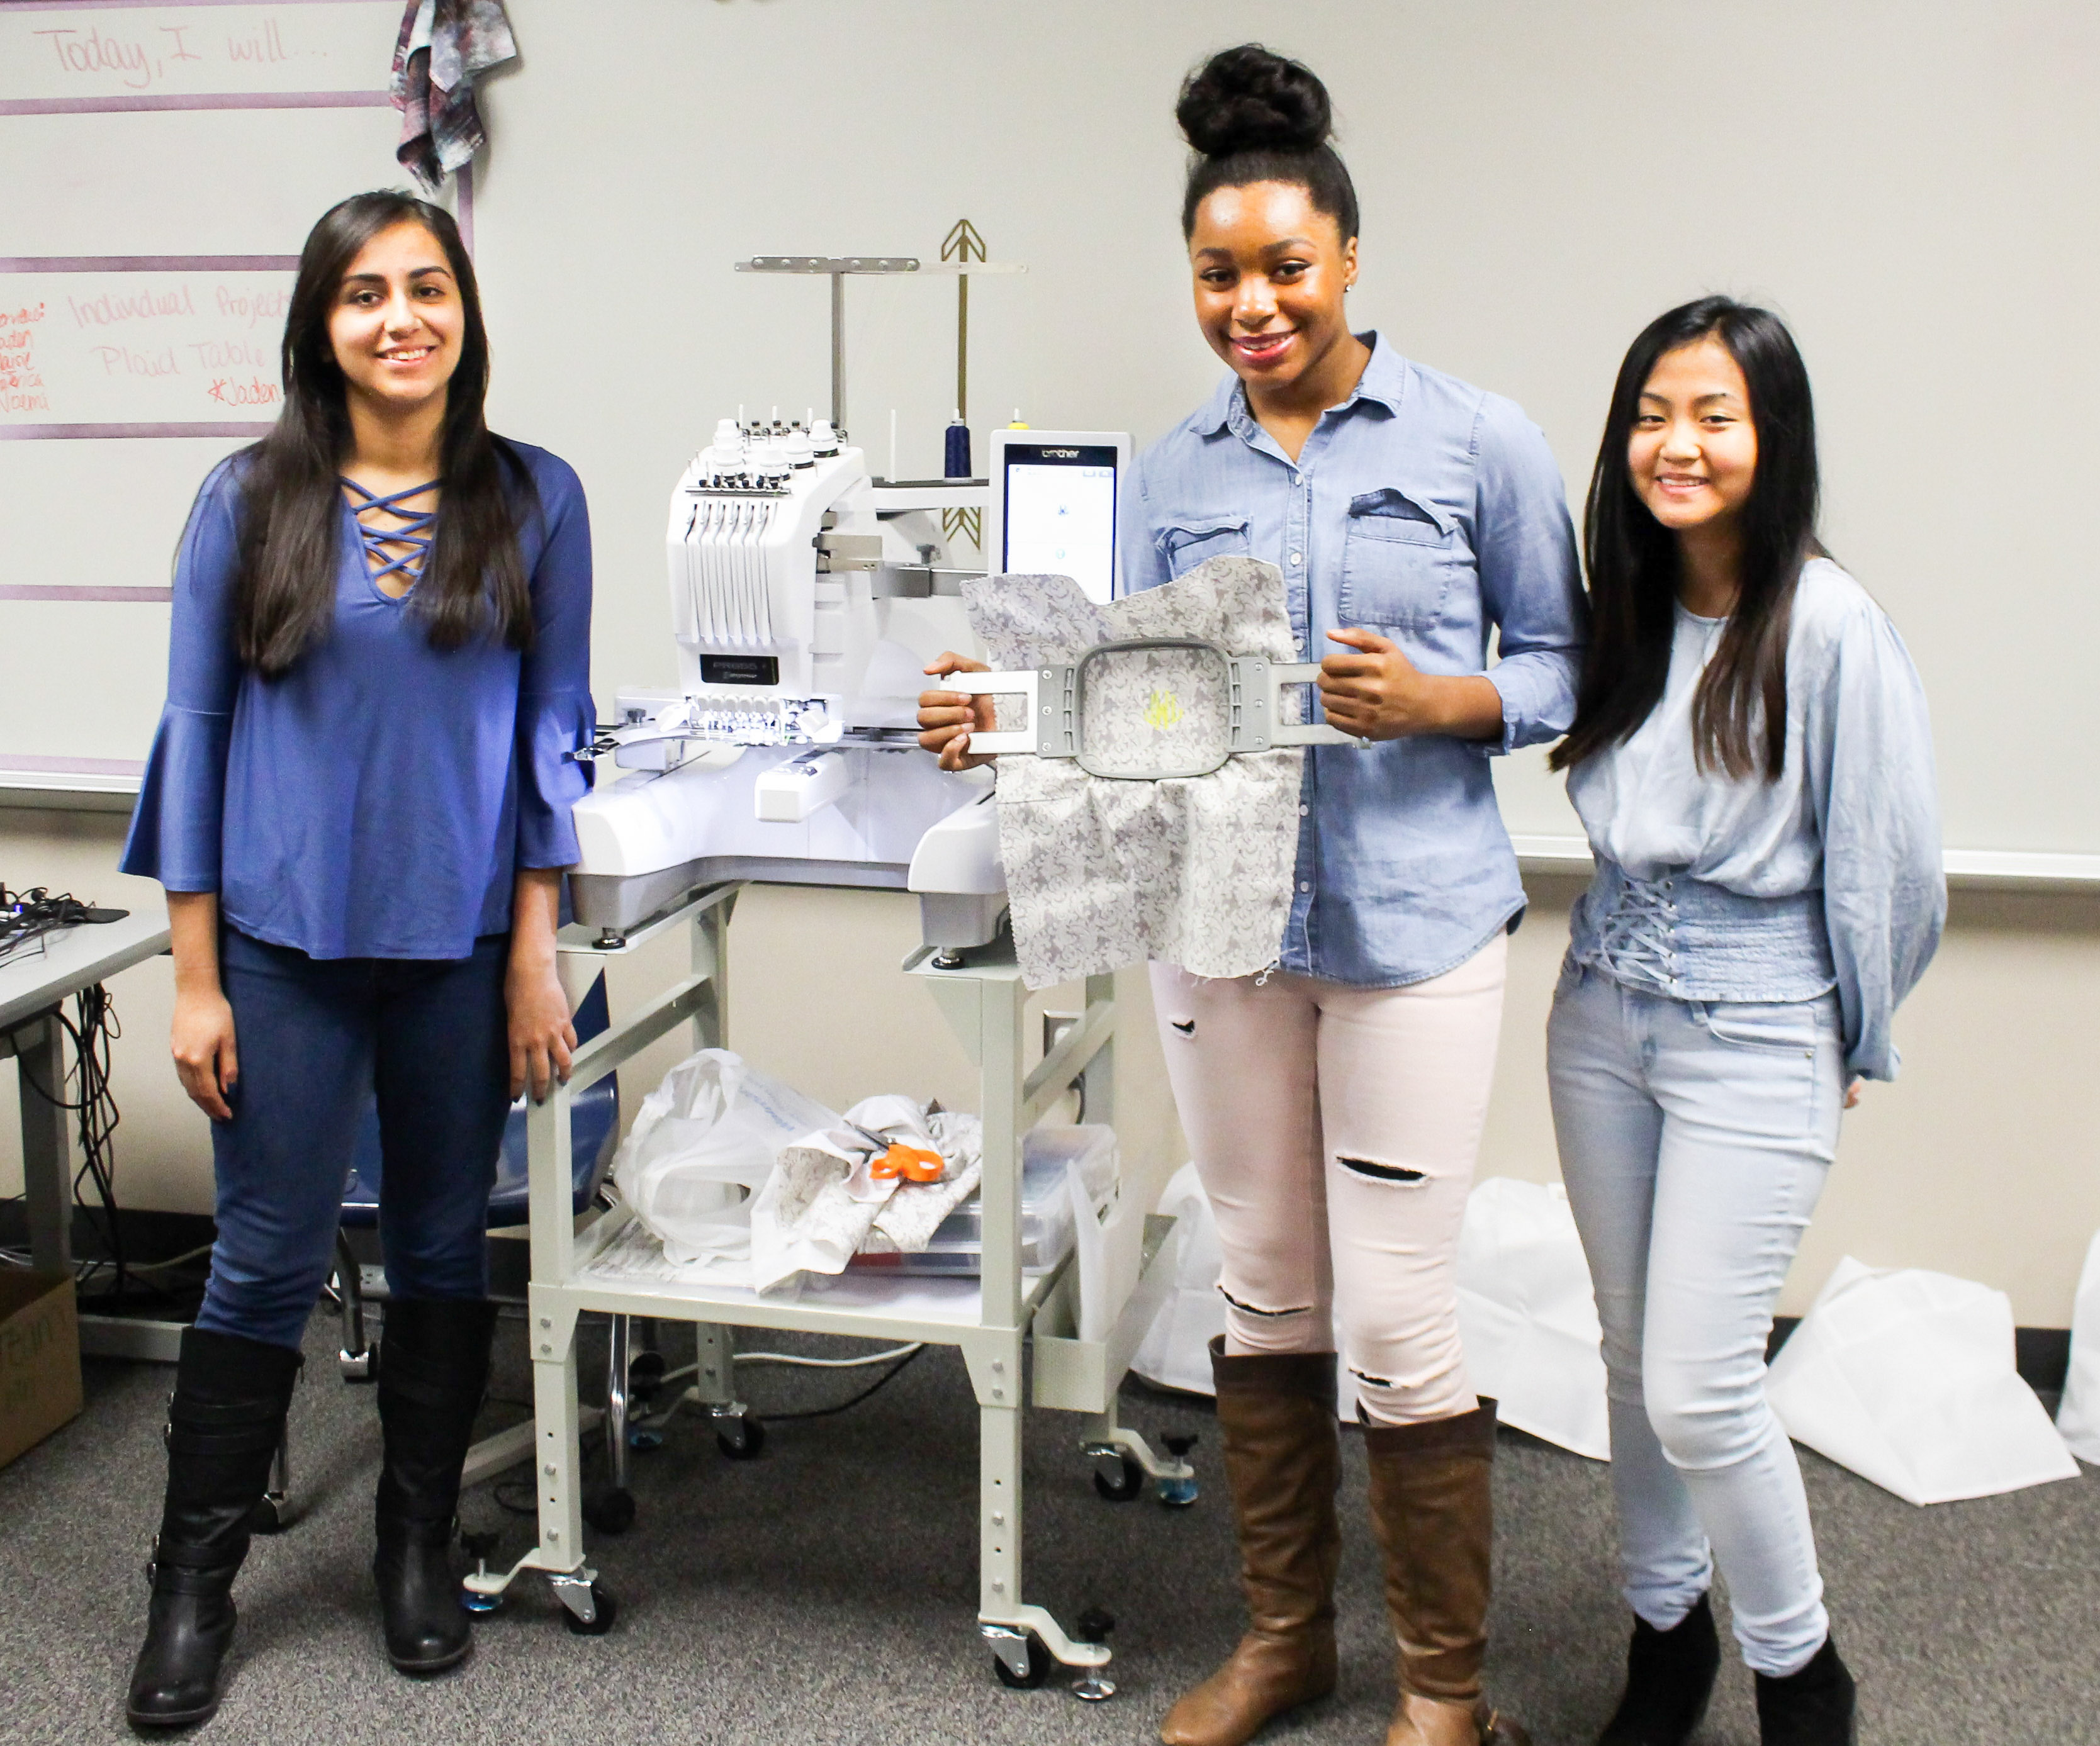 Sew cool: LHS Fashion Design classes get new sewing ...